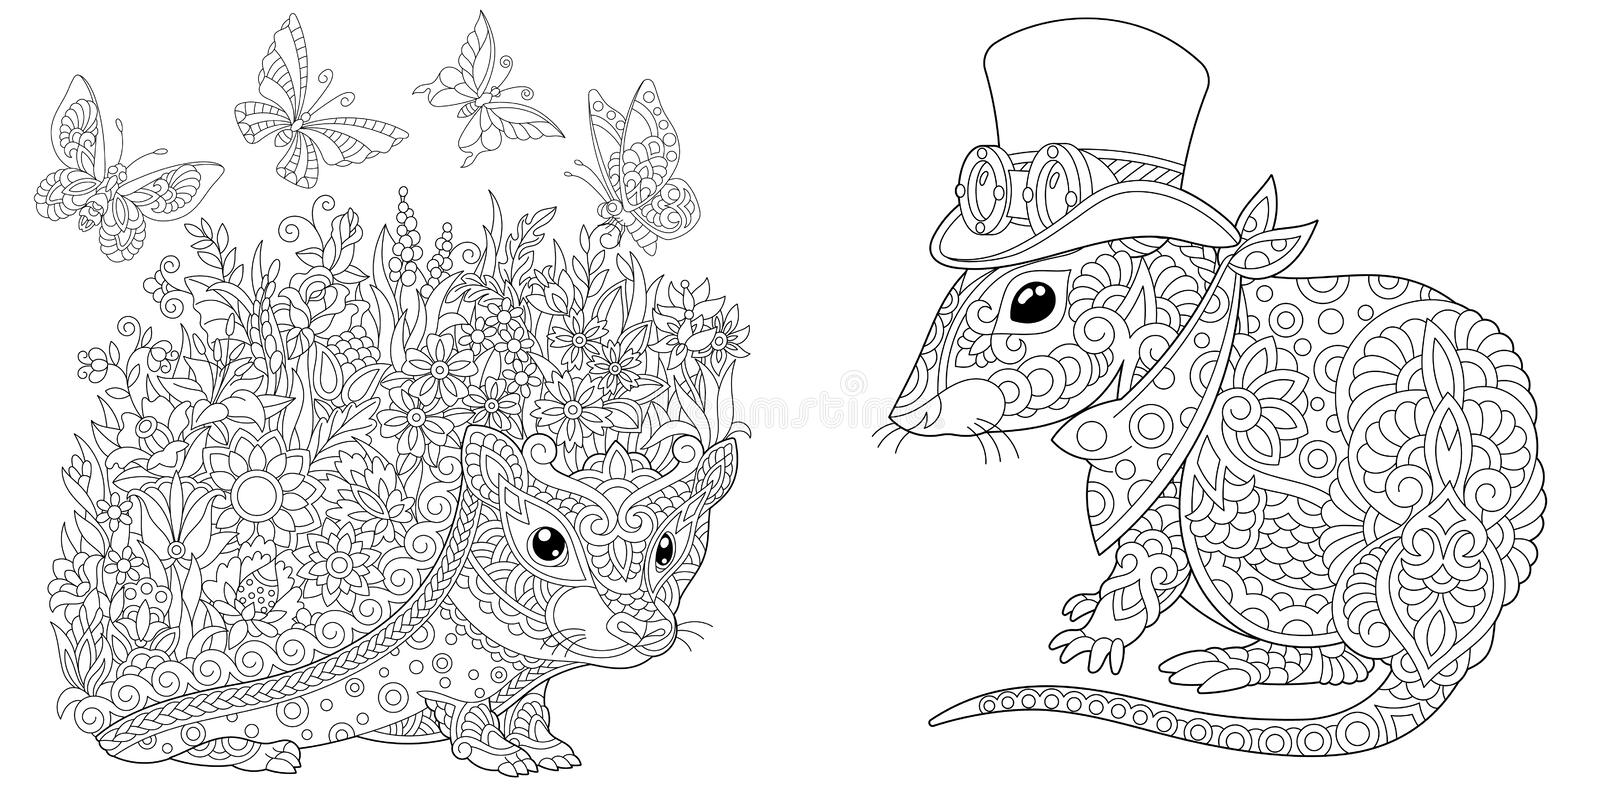 Hedgehog Coloring Pages for Children. 100 Images. Print Them Online!   394x800